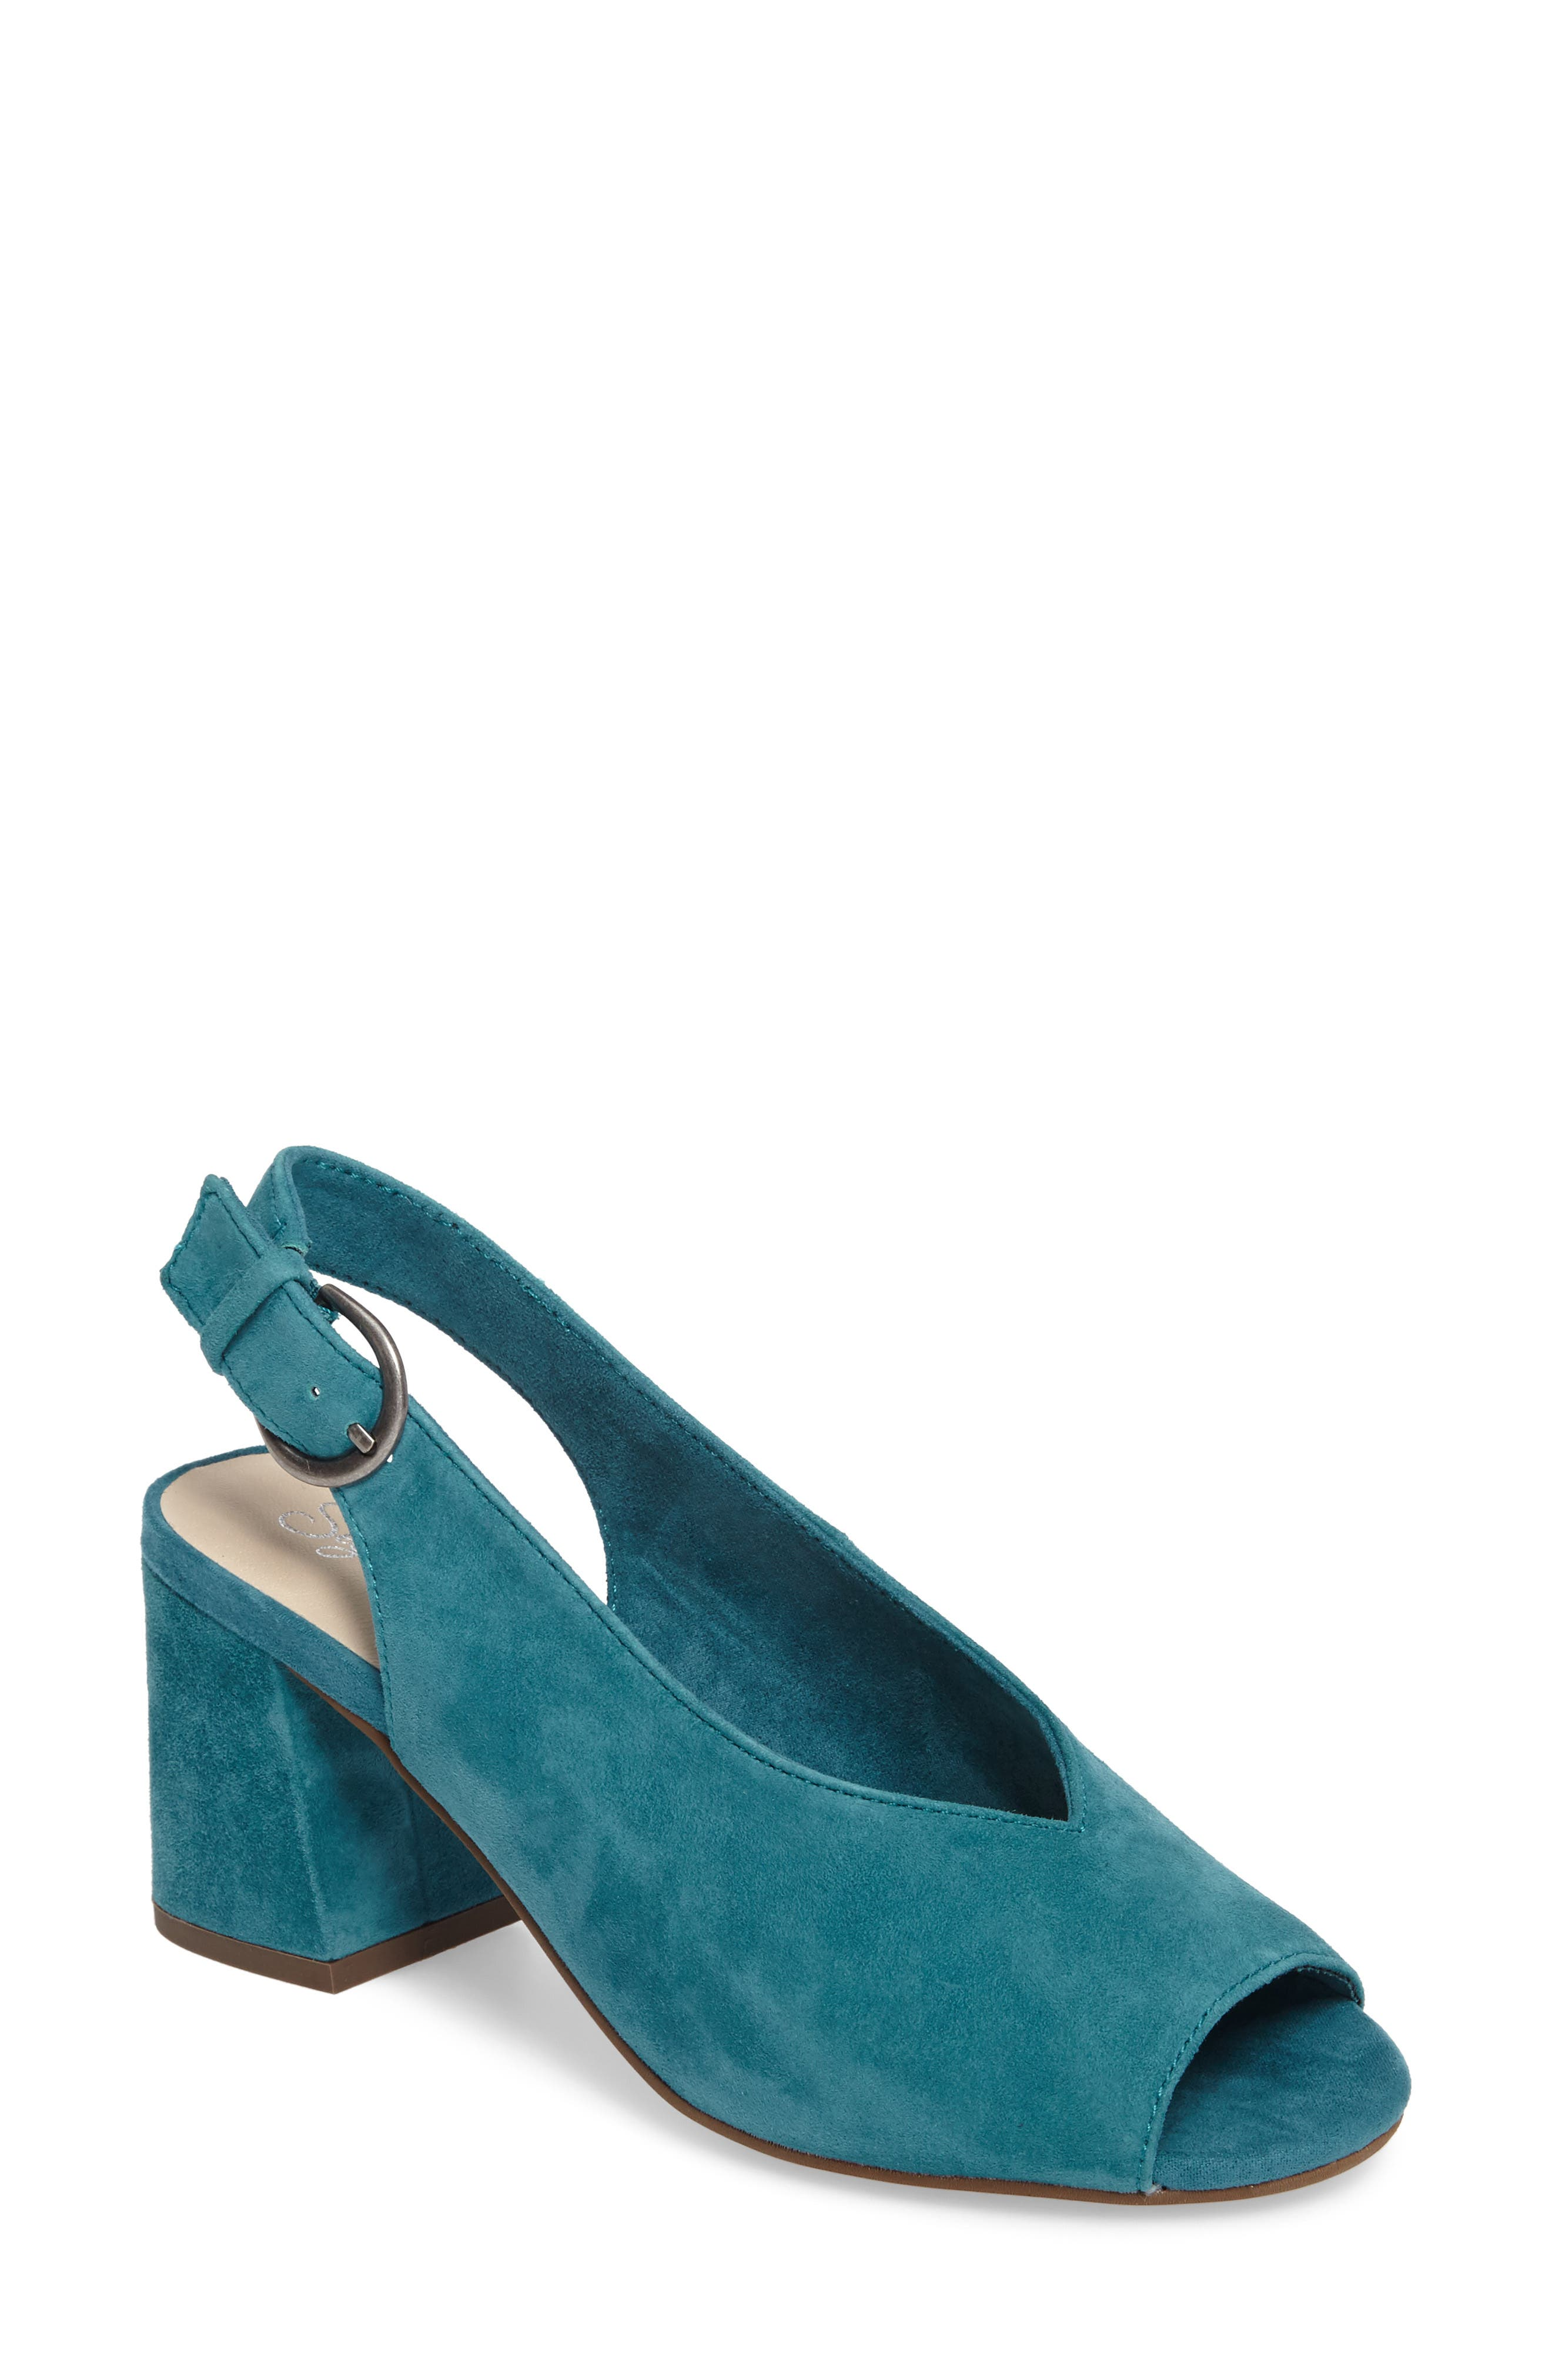 Playwright Slingback Sandal,                             Main thumbnail 1, color,                             TEAL SUEDE